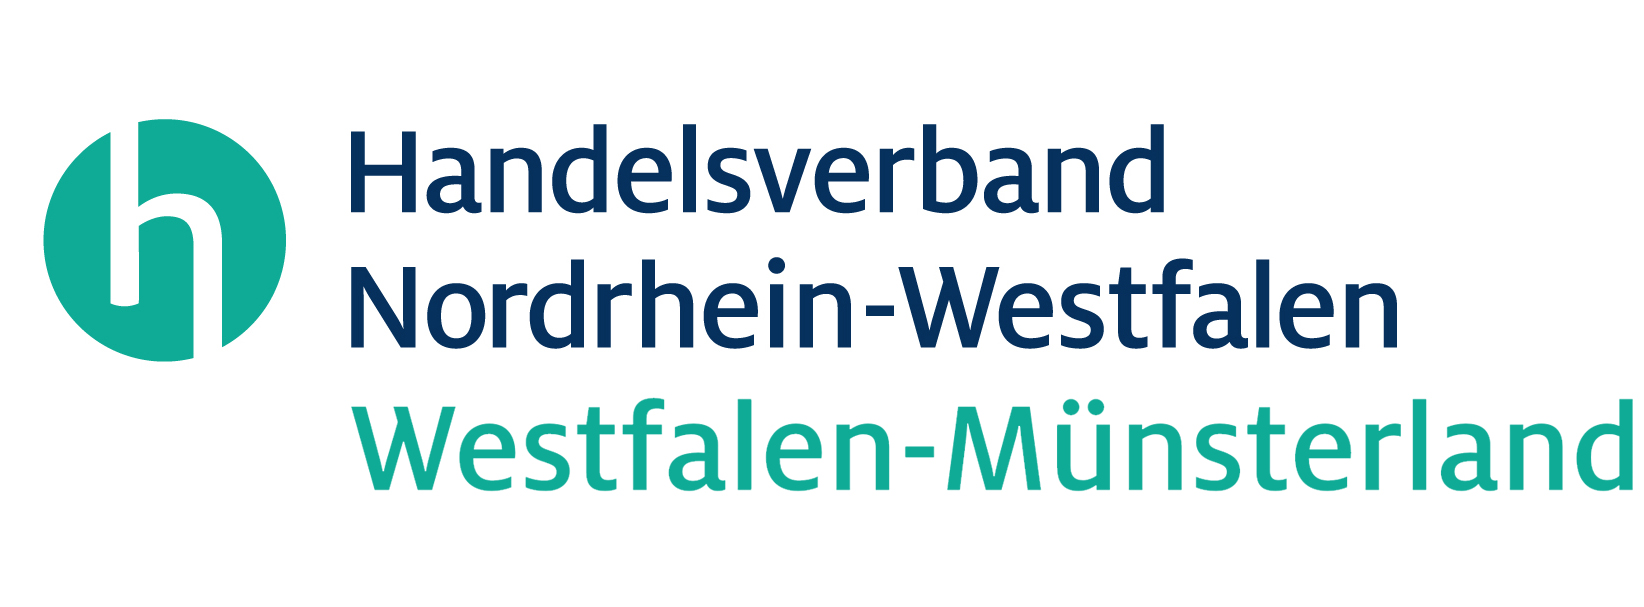 Handelsverband NRW – Westfalen-Münsterland